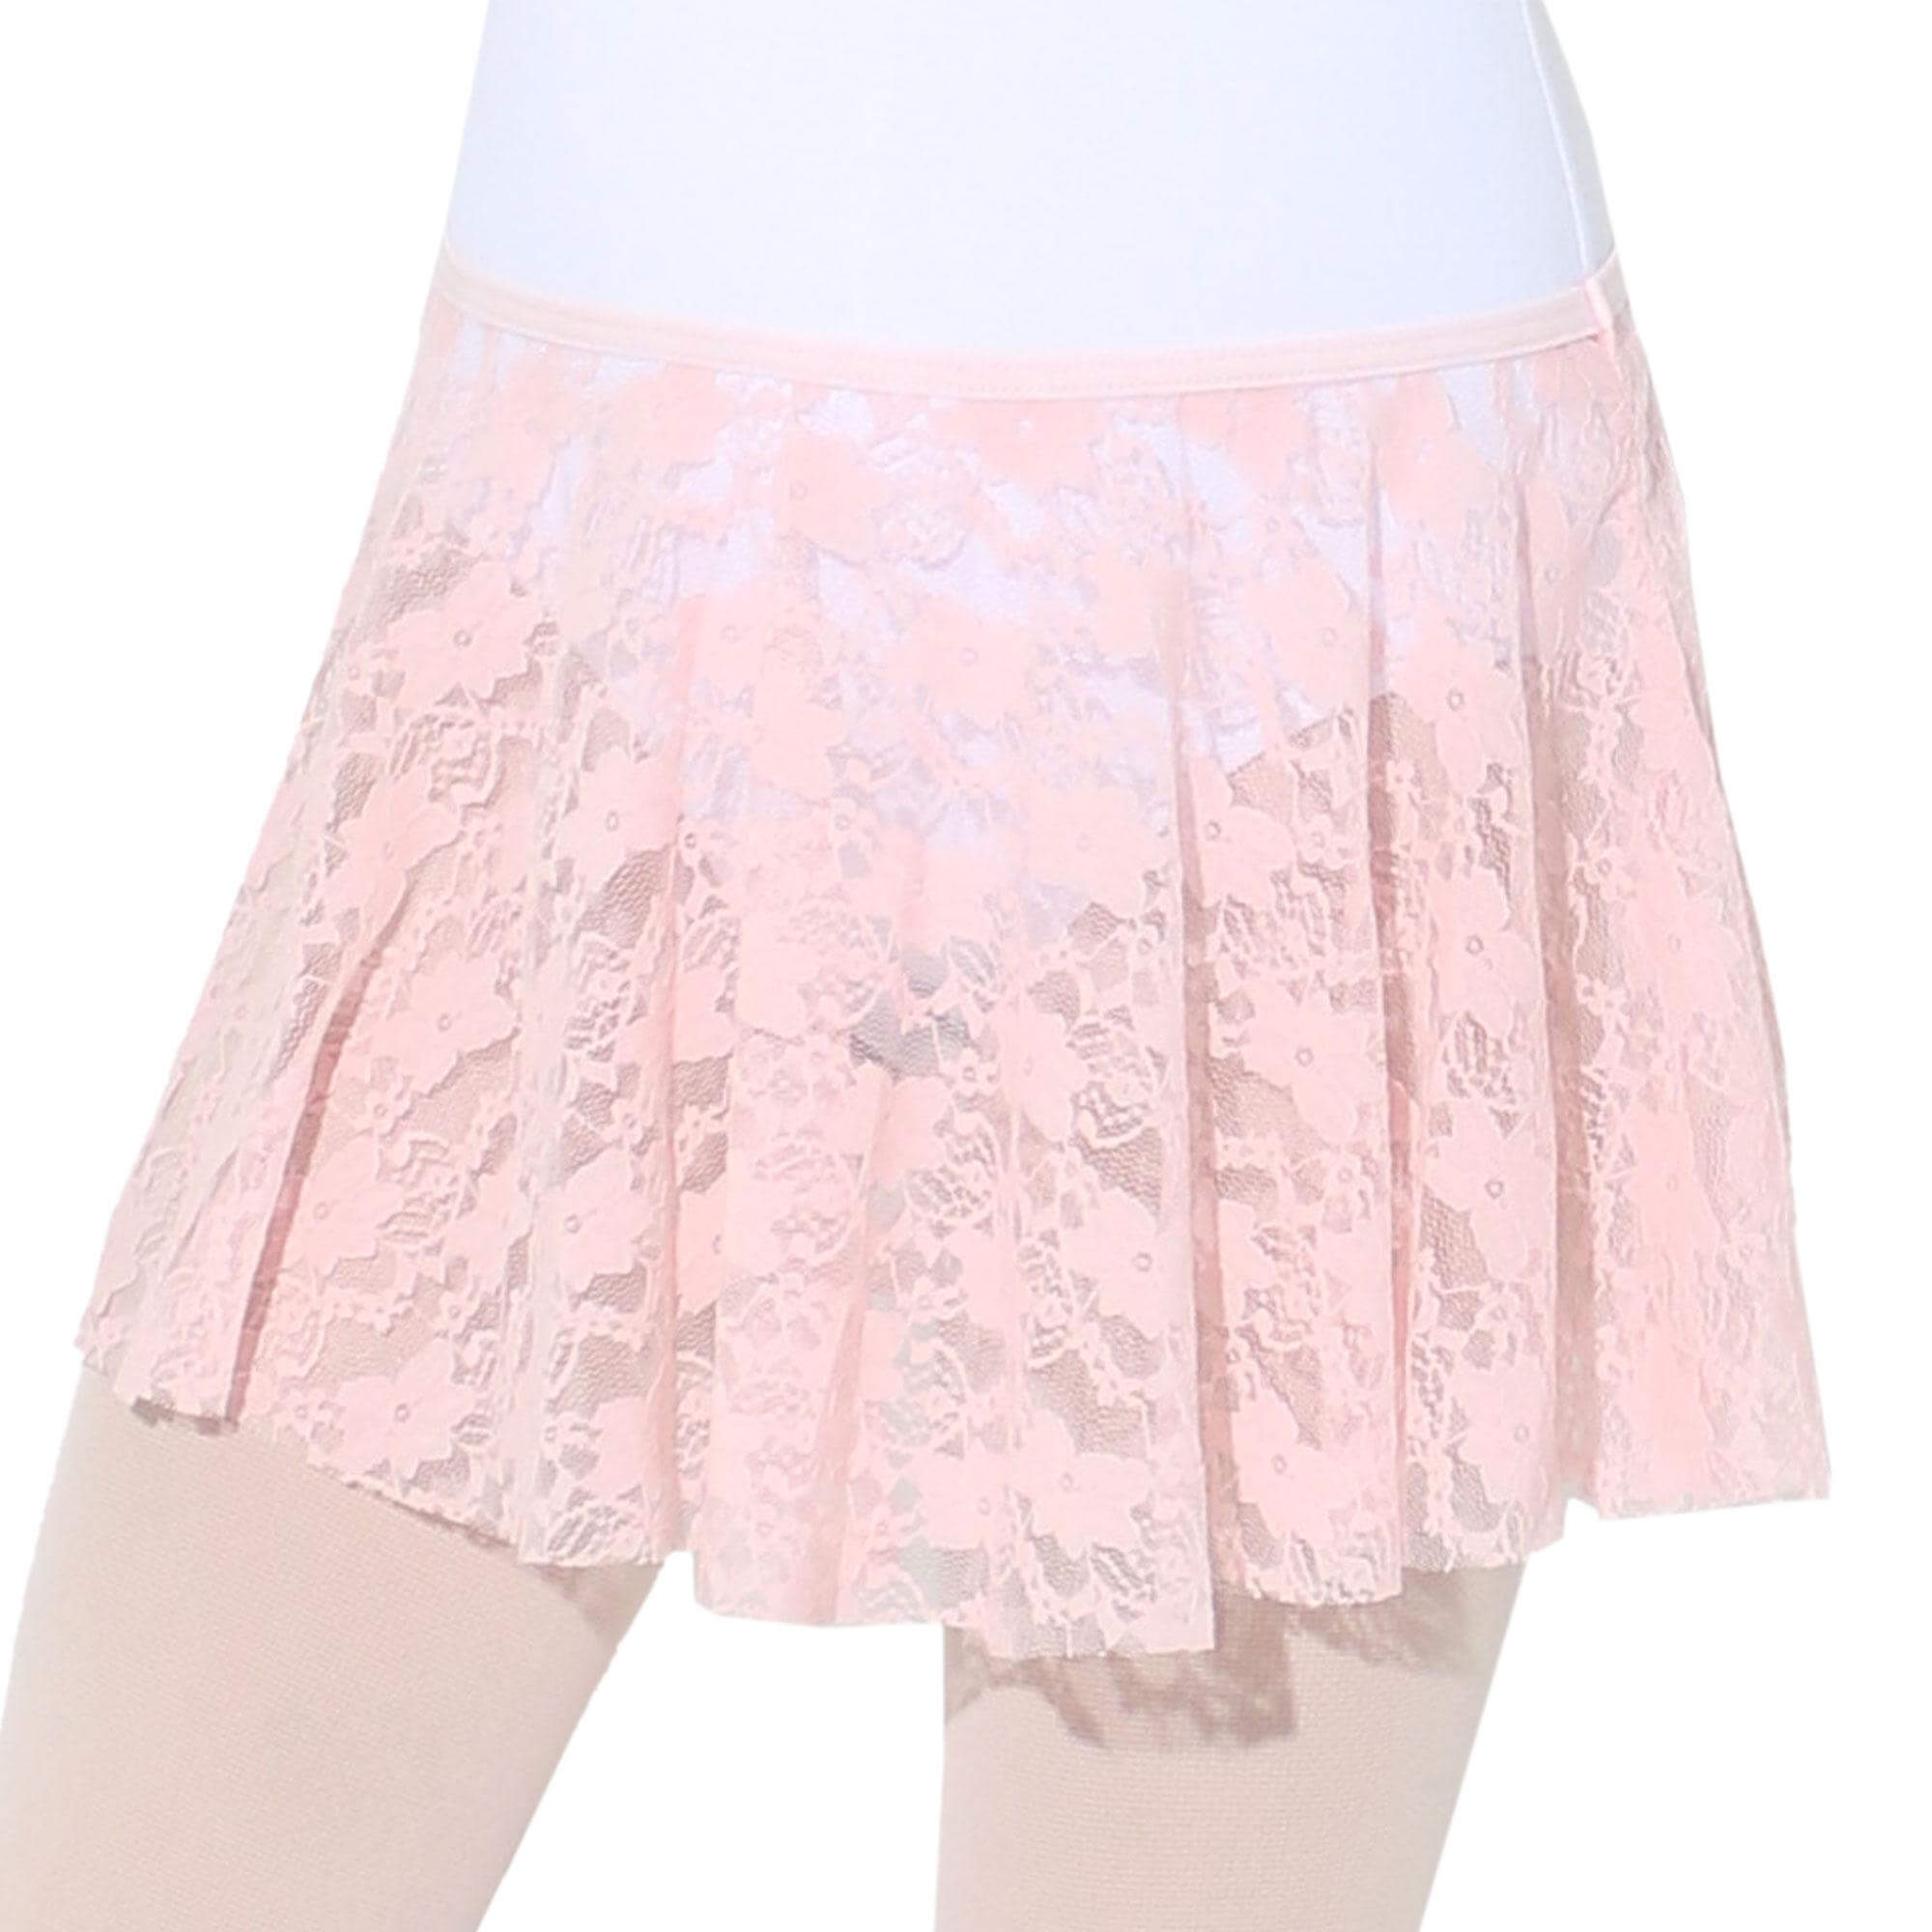 Reflectionz Lace Skirt